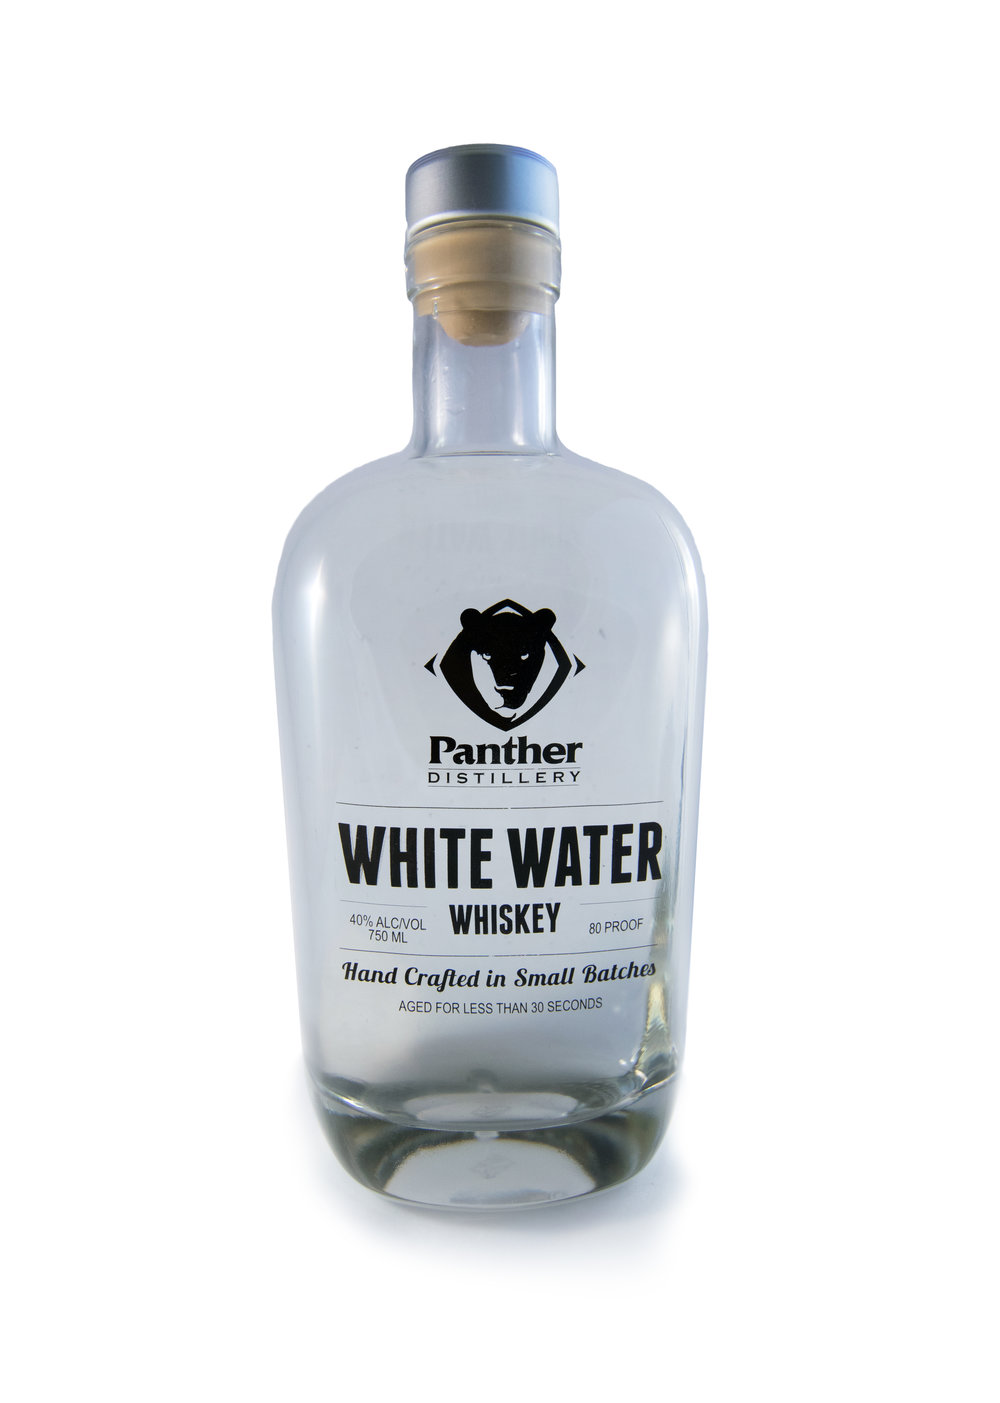 white water whiskey panther distillery